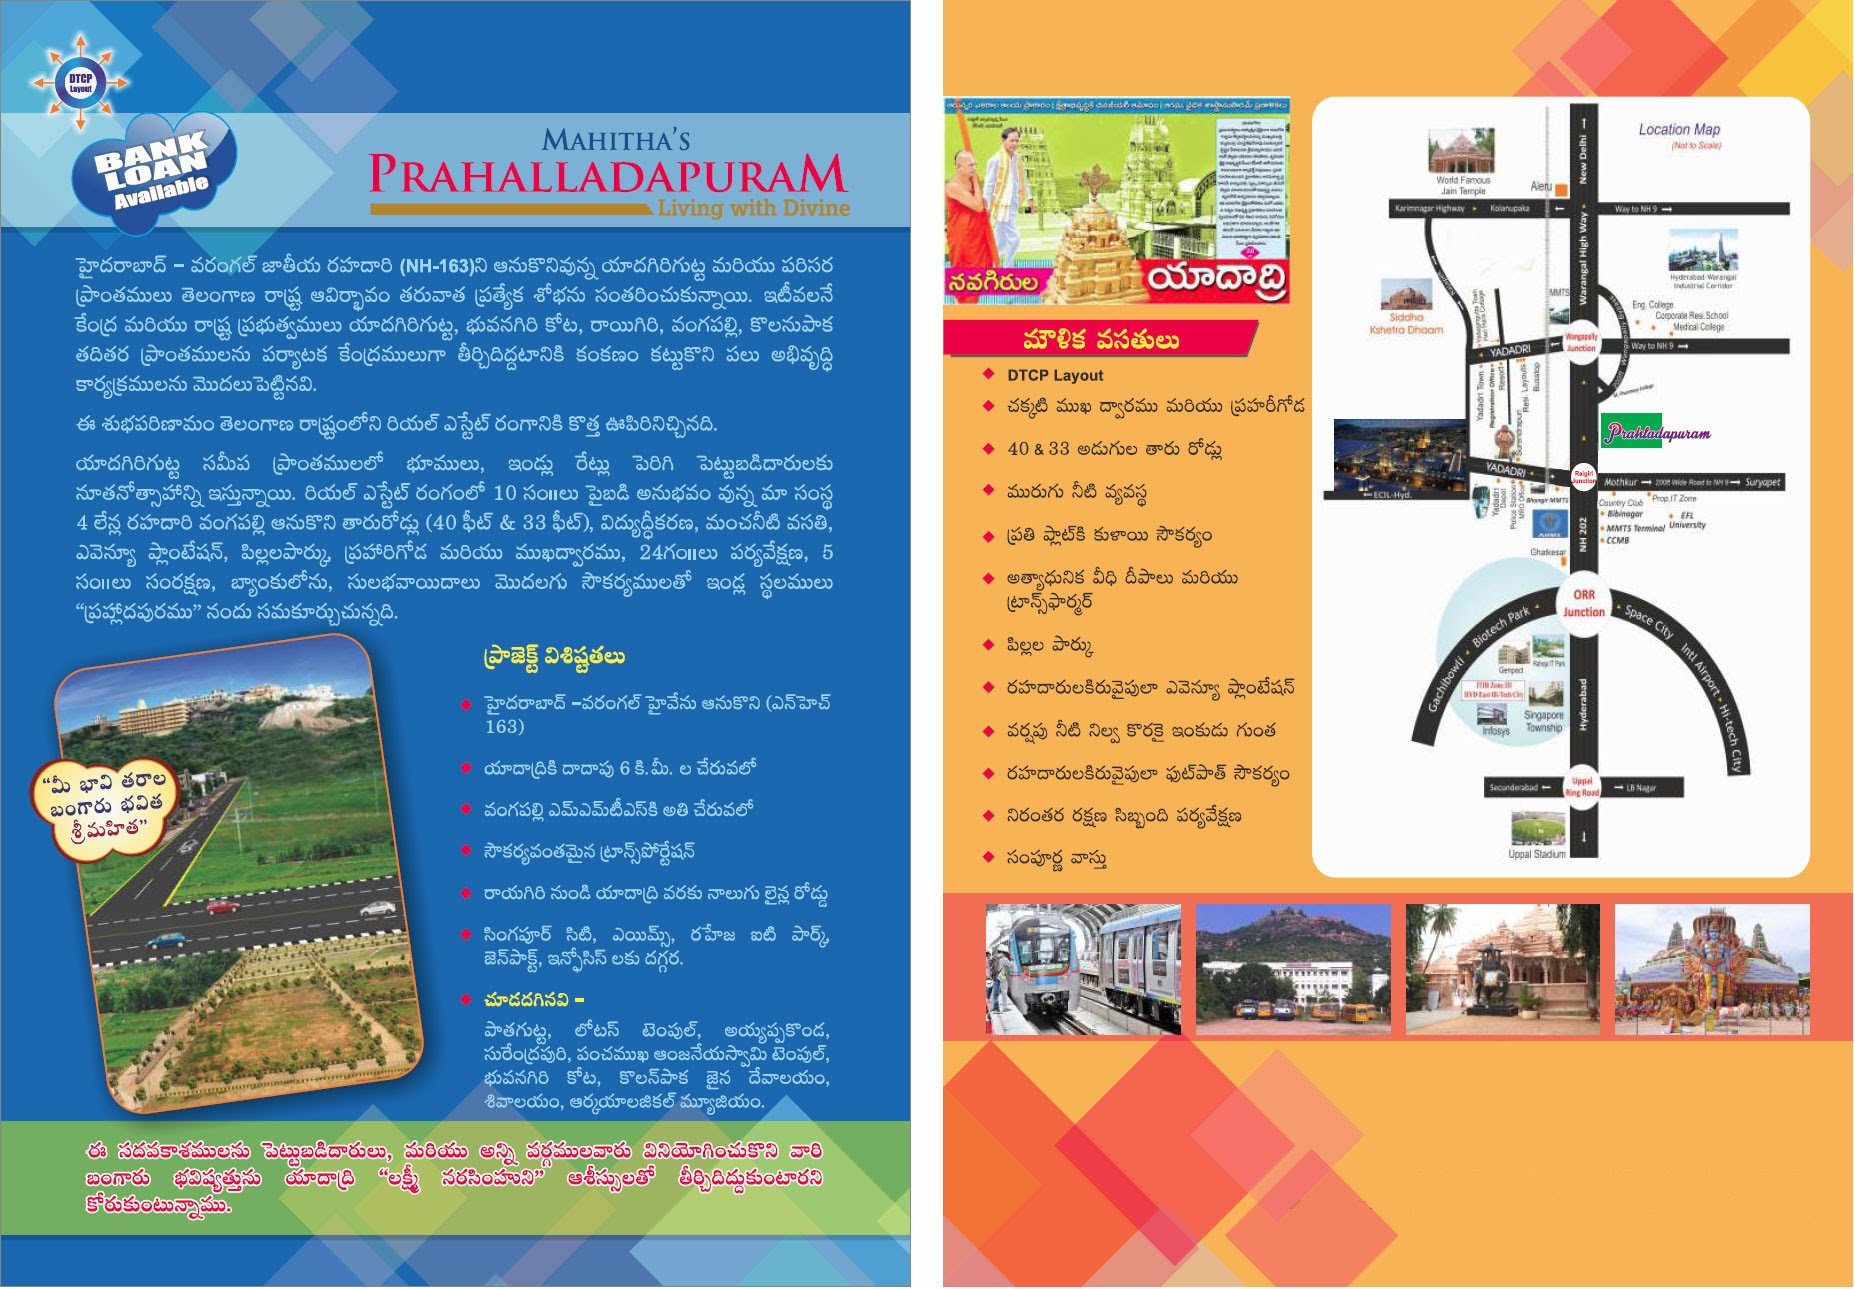 https://sites.google.com/a/egway.co.in/realestate/plots-in-hyderabad/mahitas-prahladapuram-wangapalli-yadagirigutta-yadadri/brochure_telugu_prahladapuram.jpg